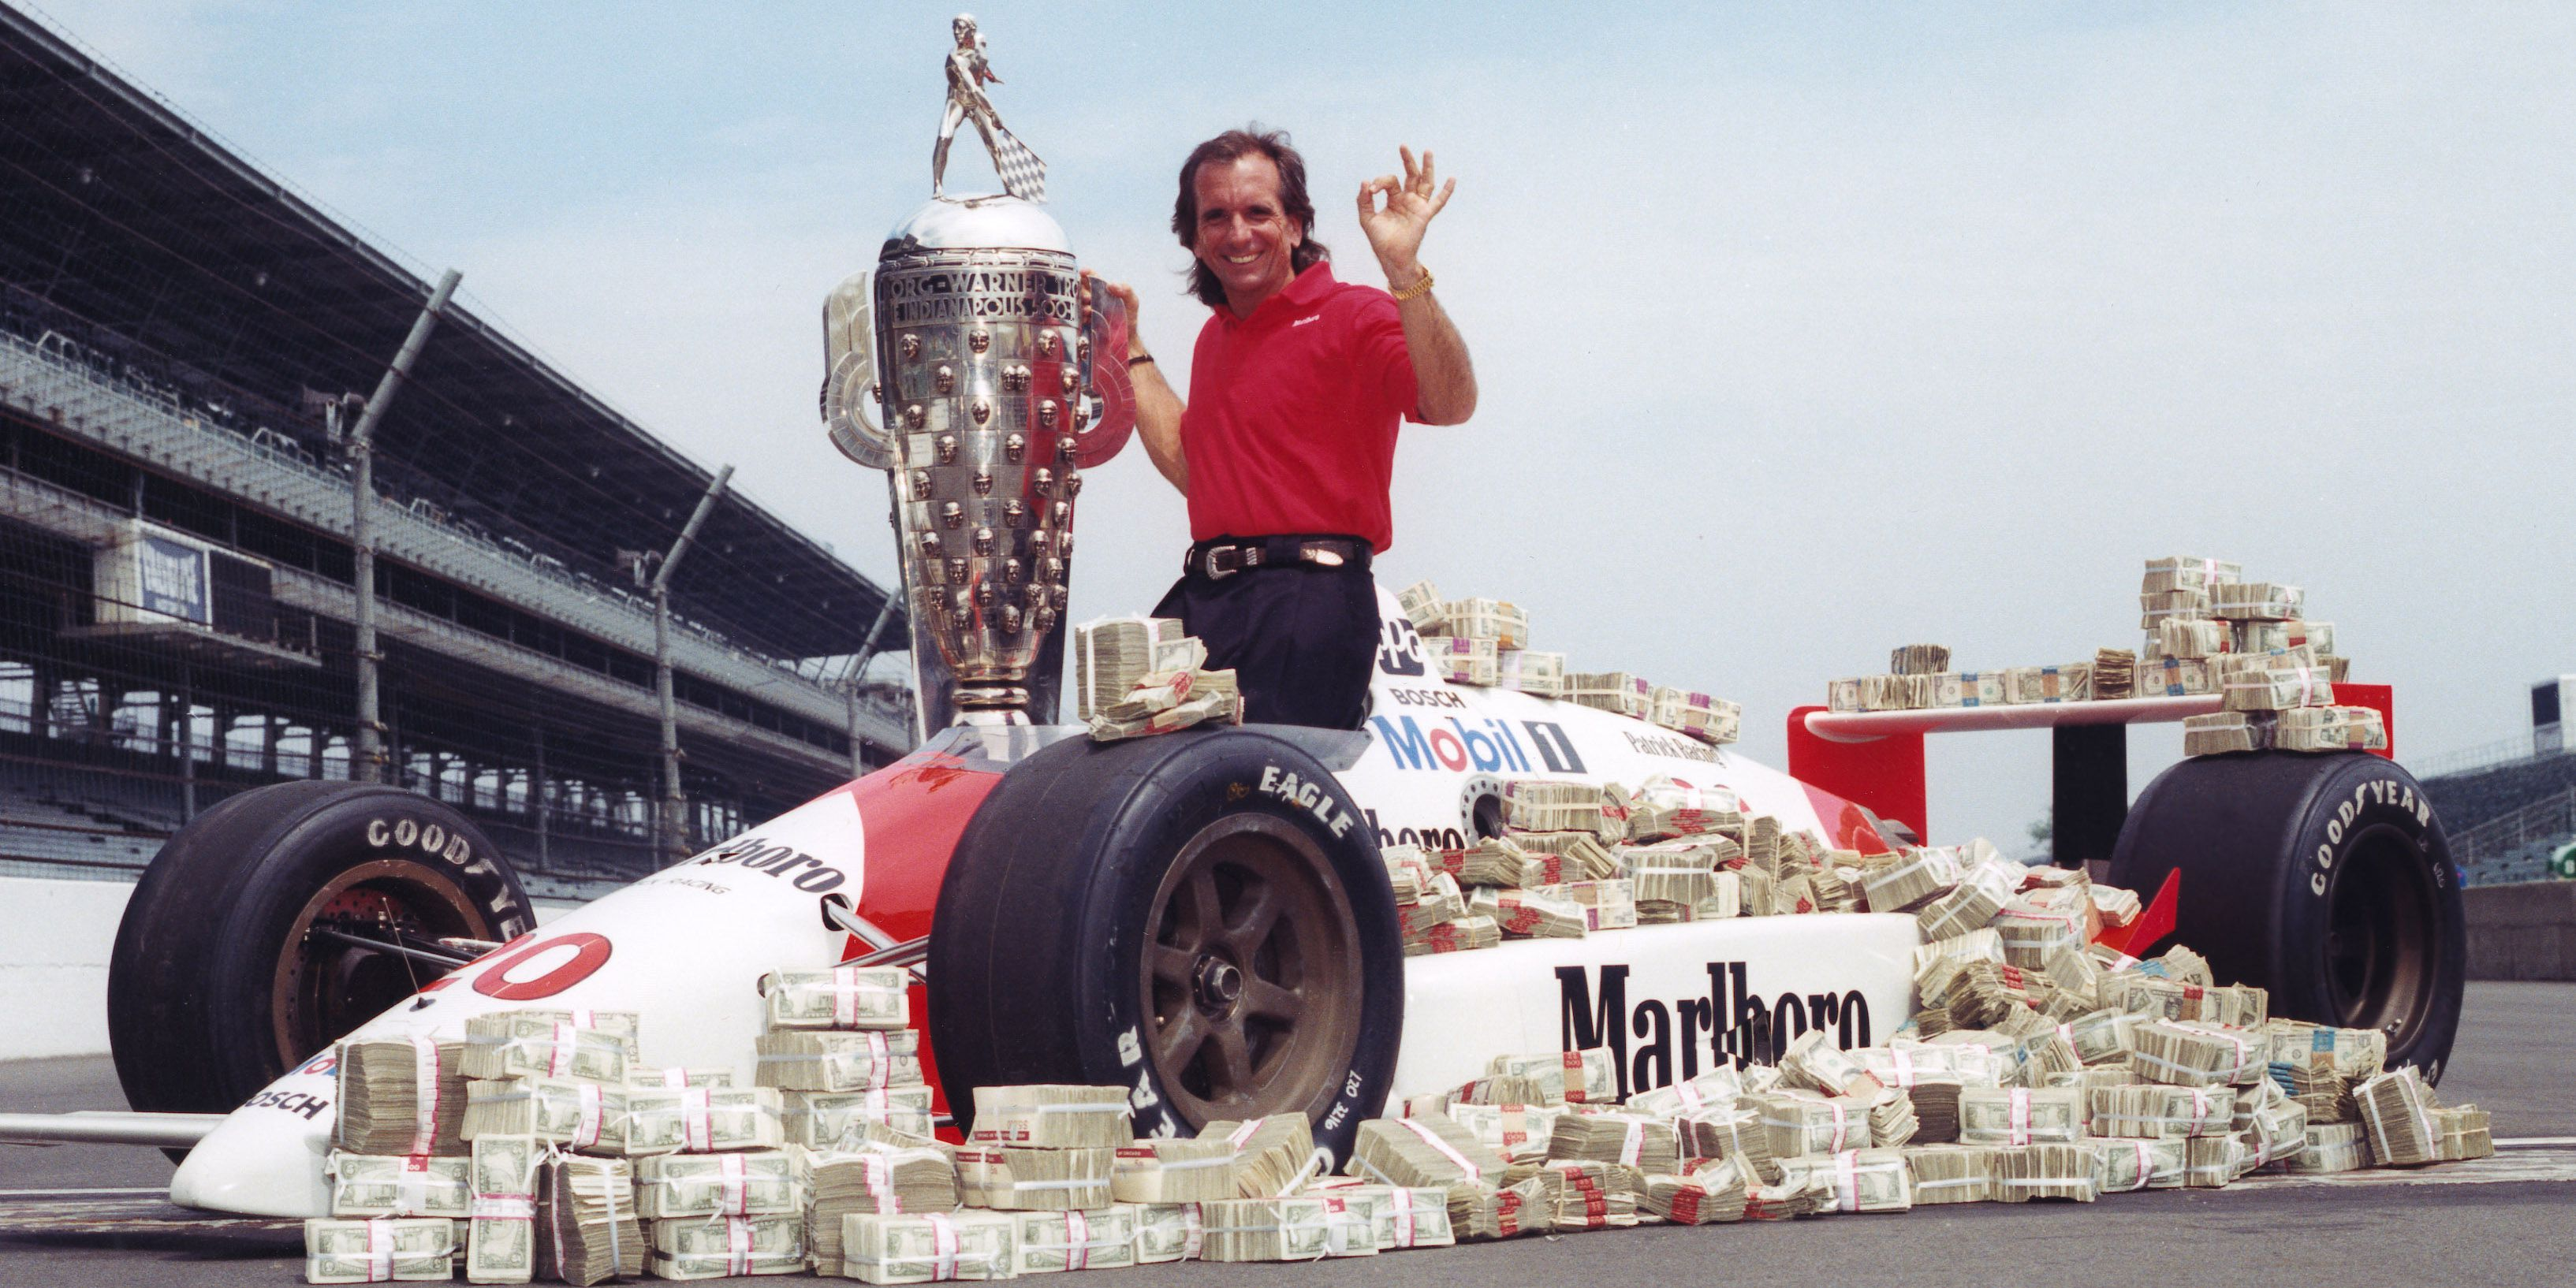 Seieren i Indy 500 i 1989 gjorde at Emmo kunne innkassere over 1 million dollar i premiepenger. Foto: Indianapolis Motor Speedway